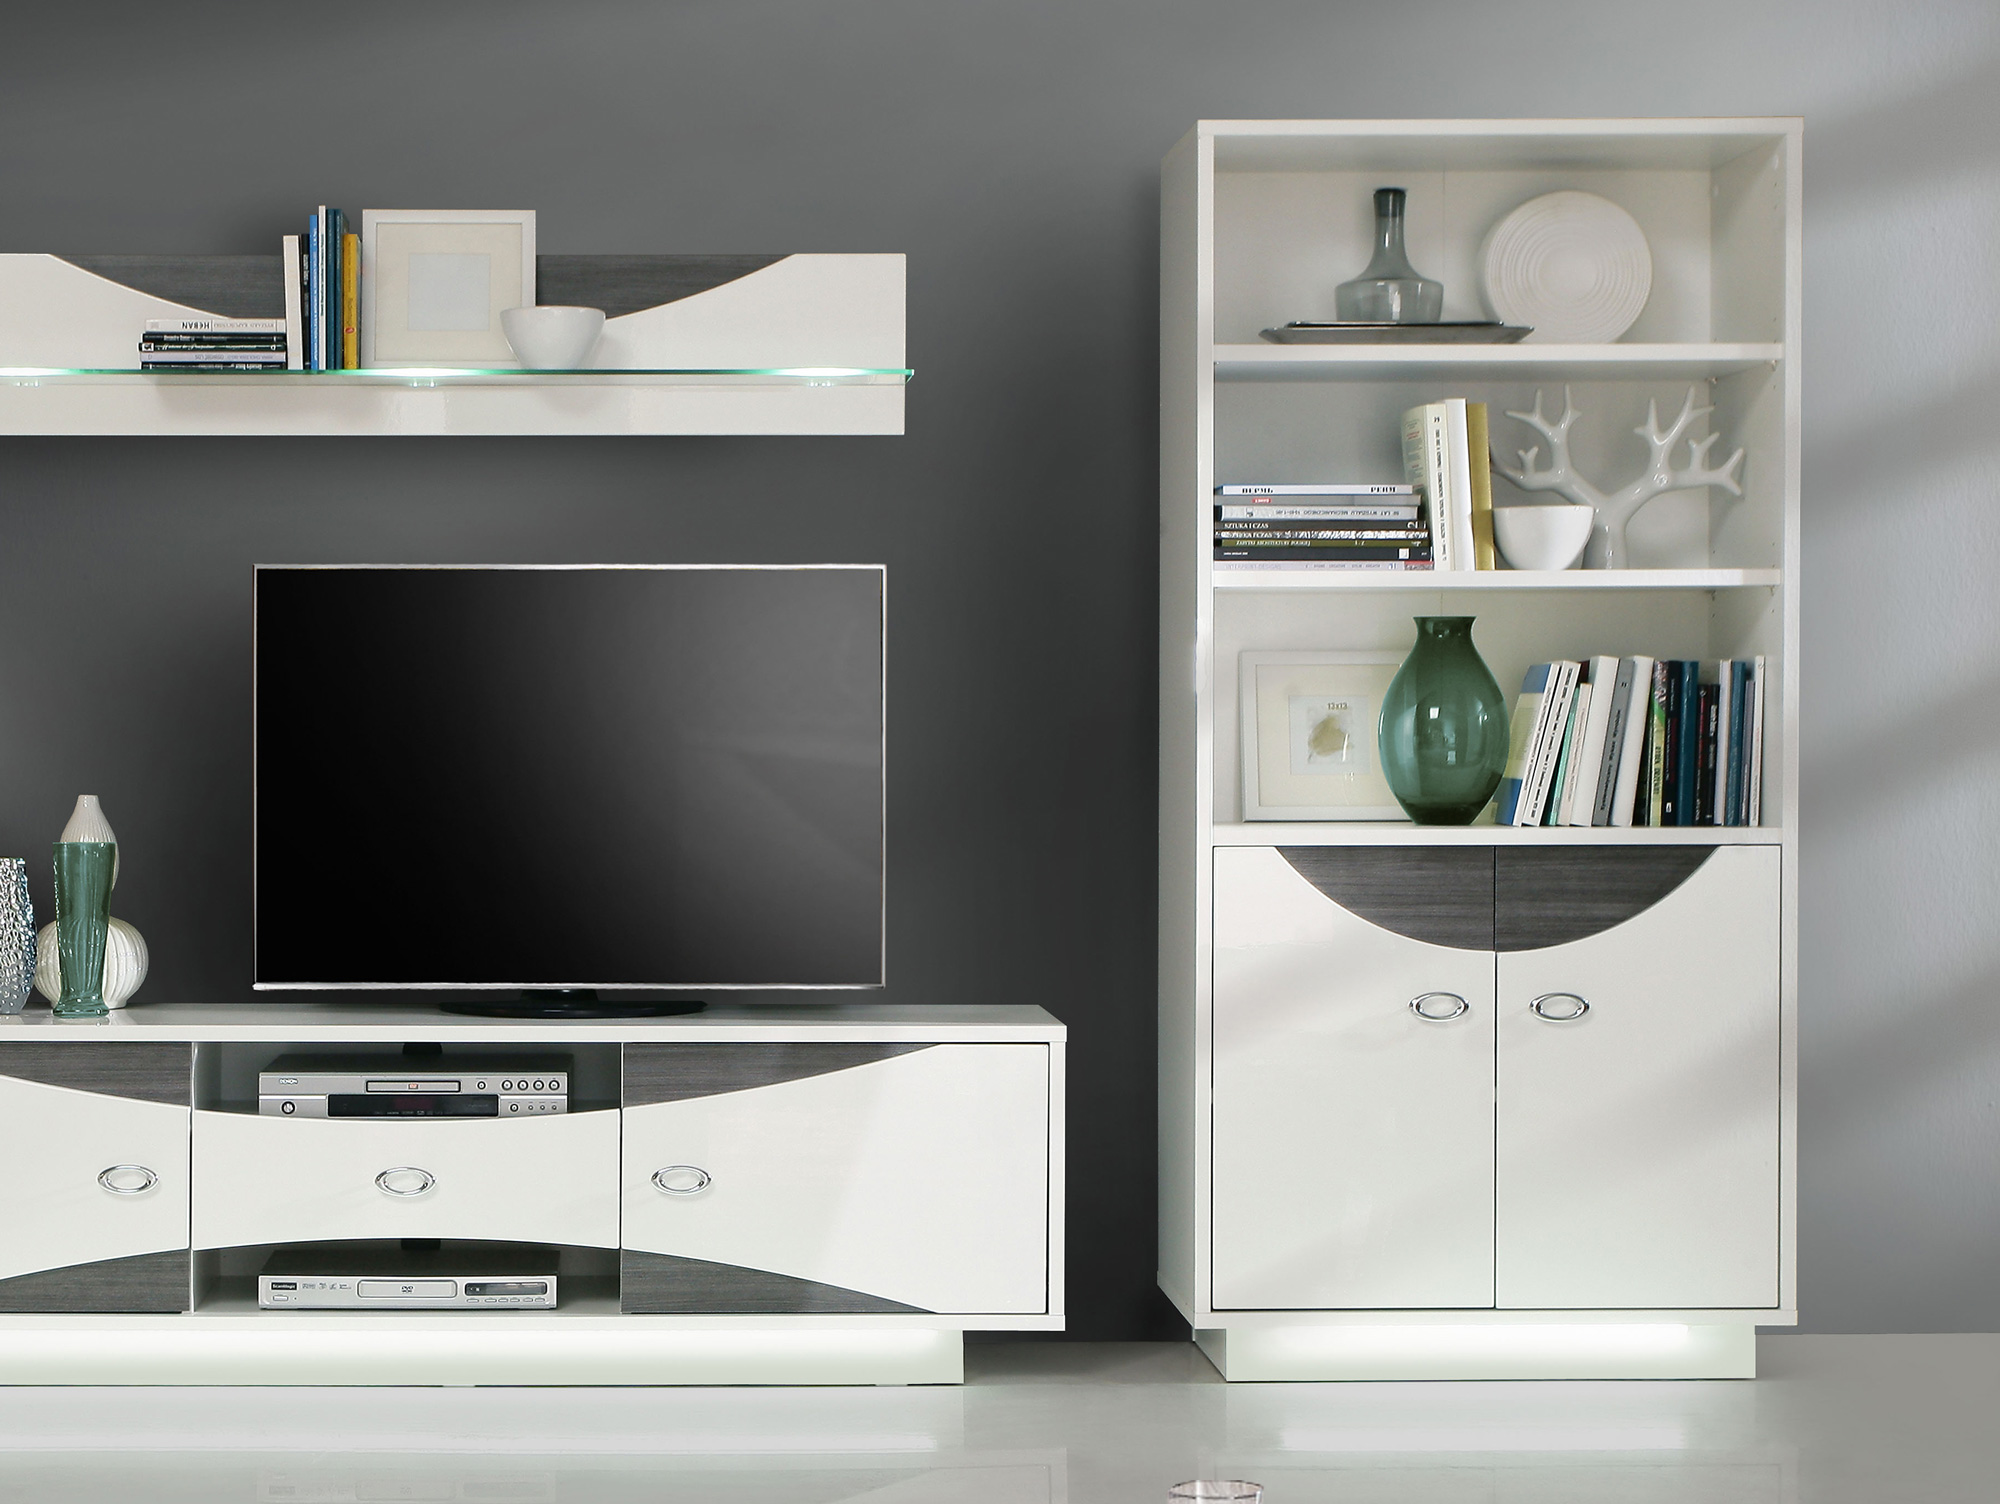 wanda regal wei eiche grau. Black Bedroom Furniture Sets. Home Design Ideas